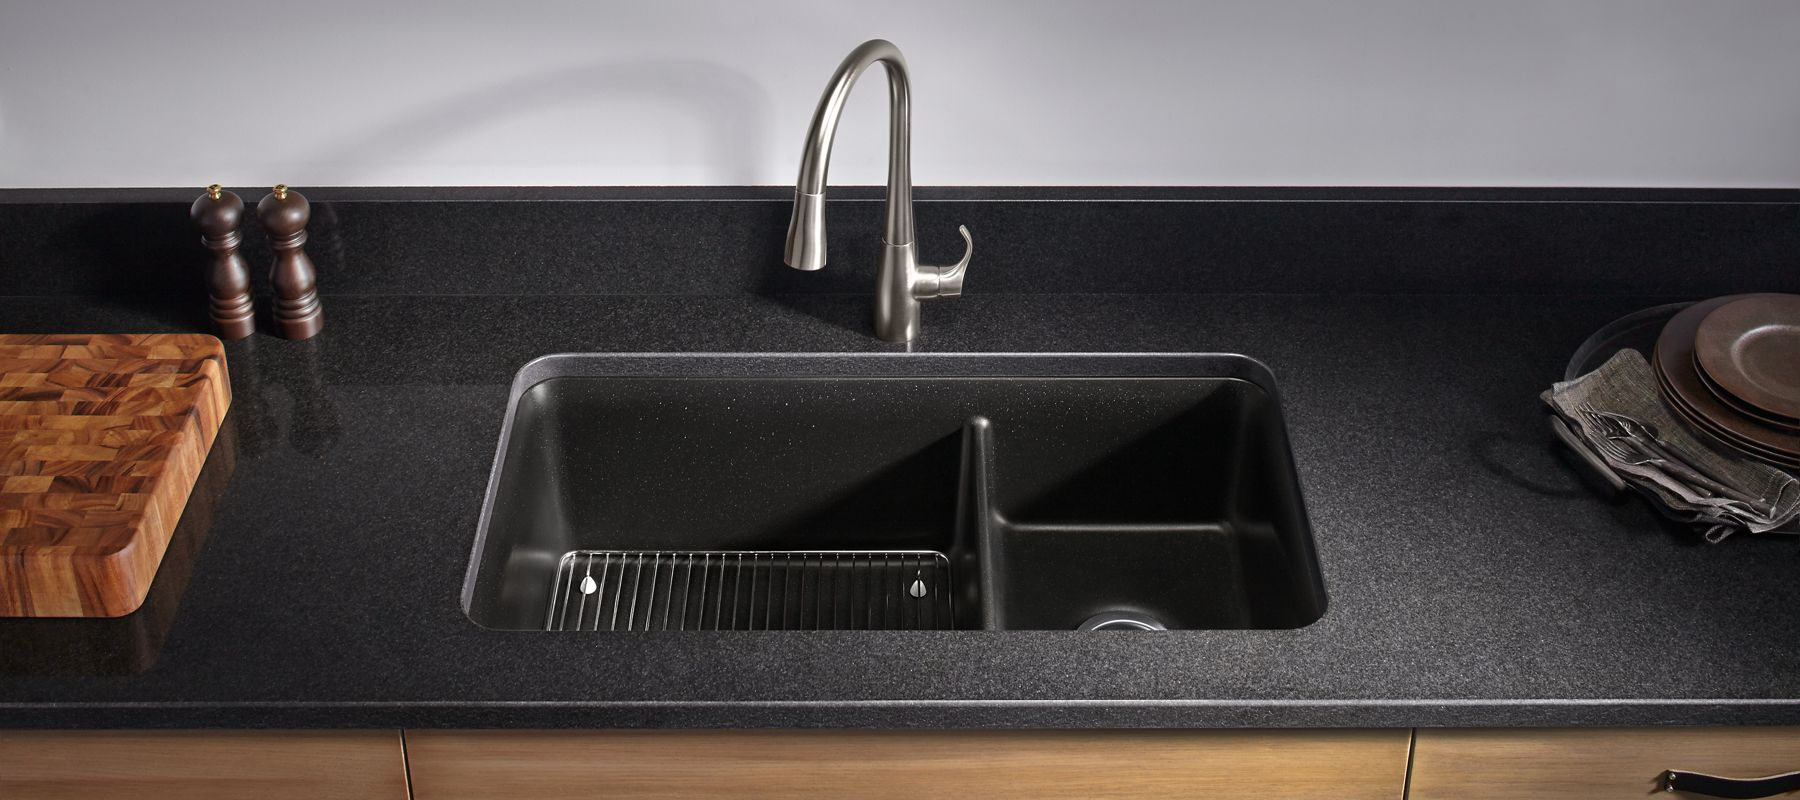 cheap black kitchen sink neoroc kitchen sinks 5239